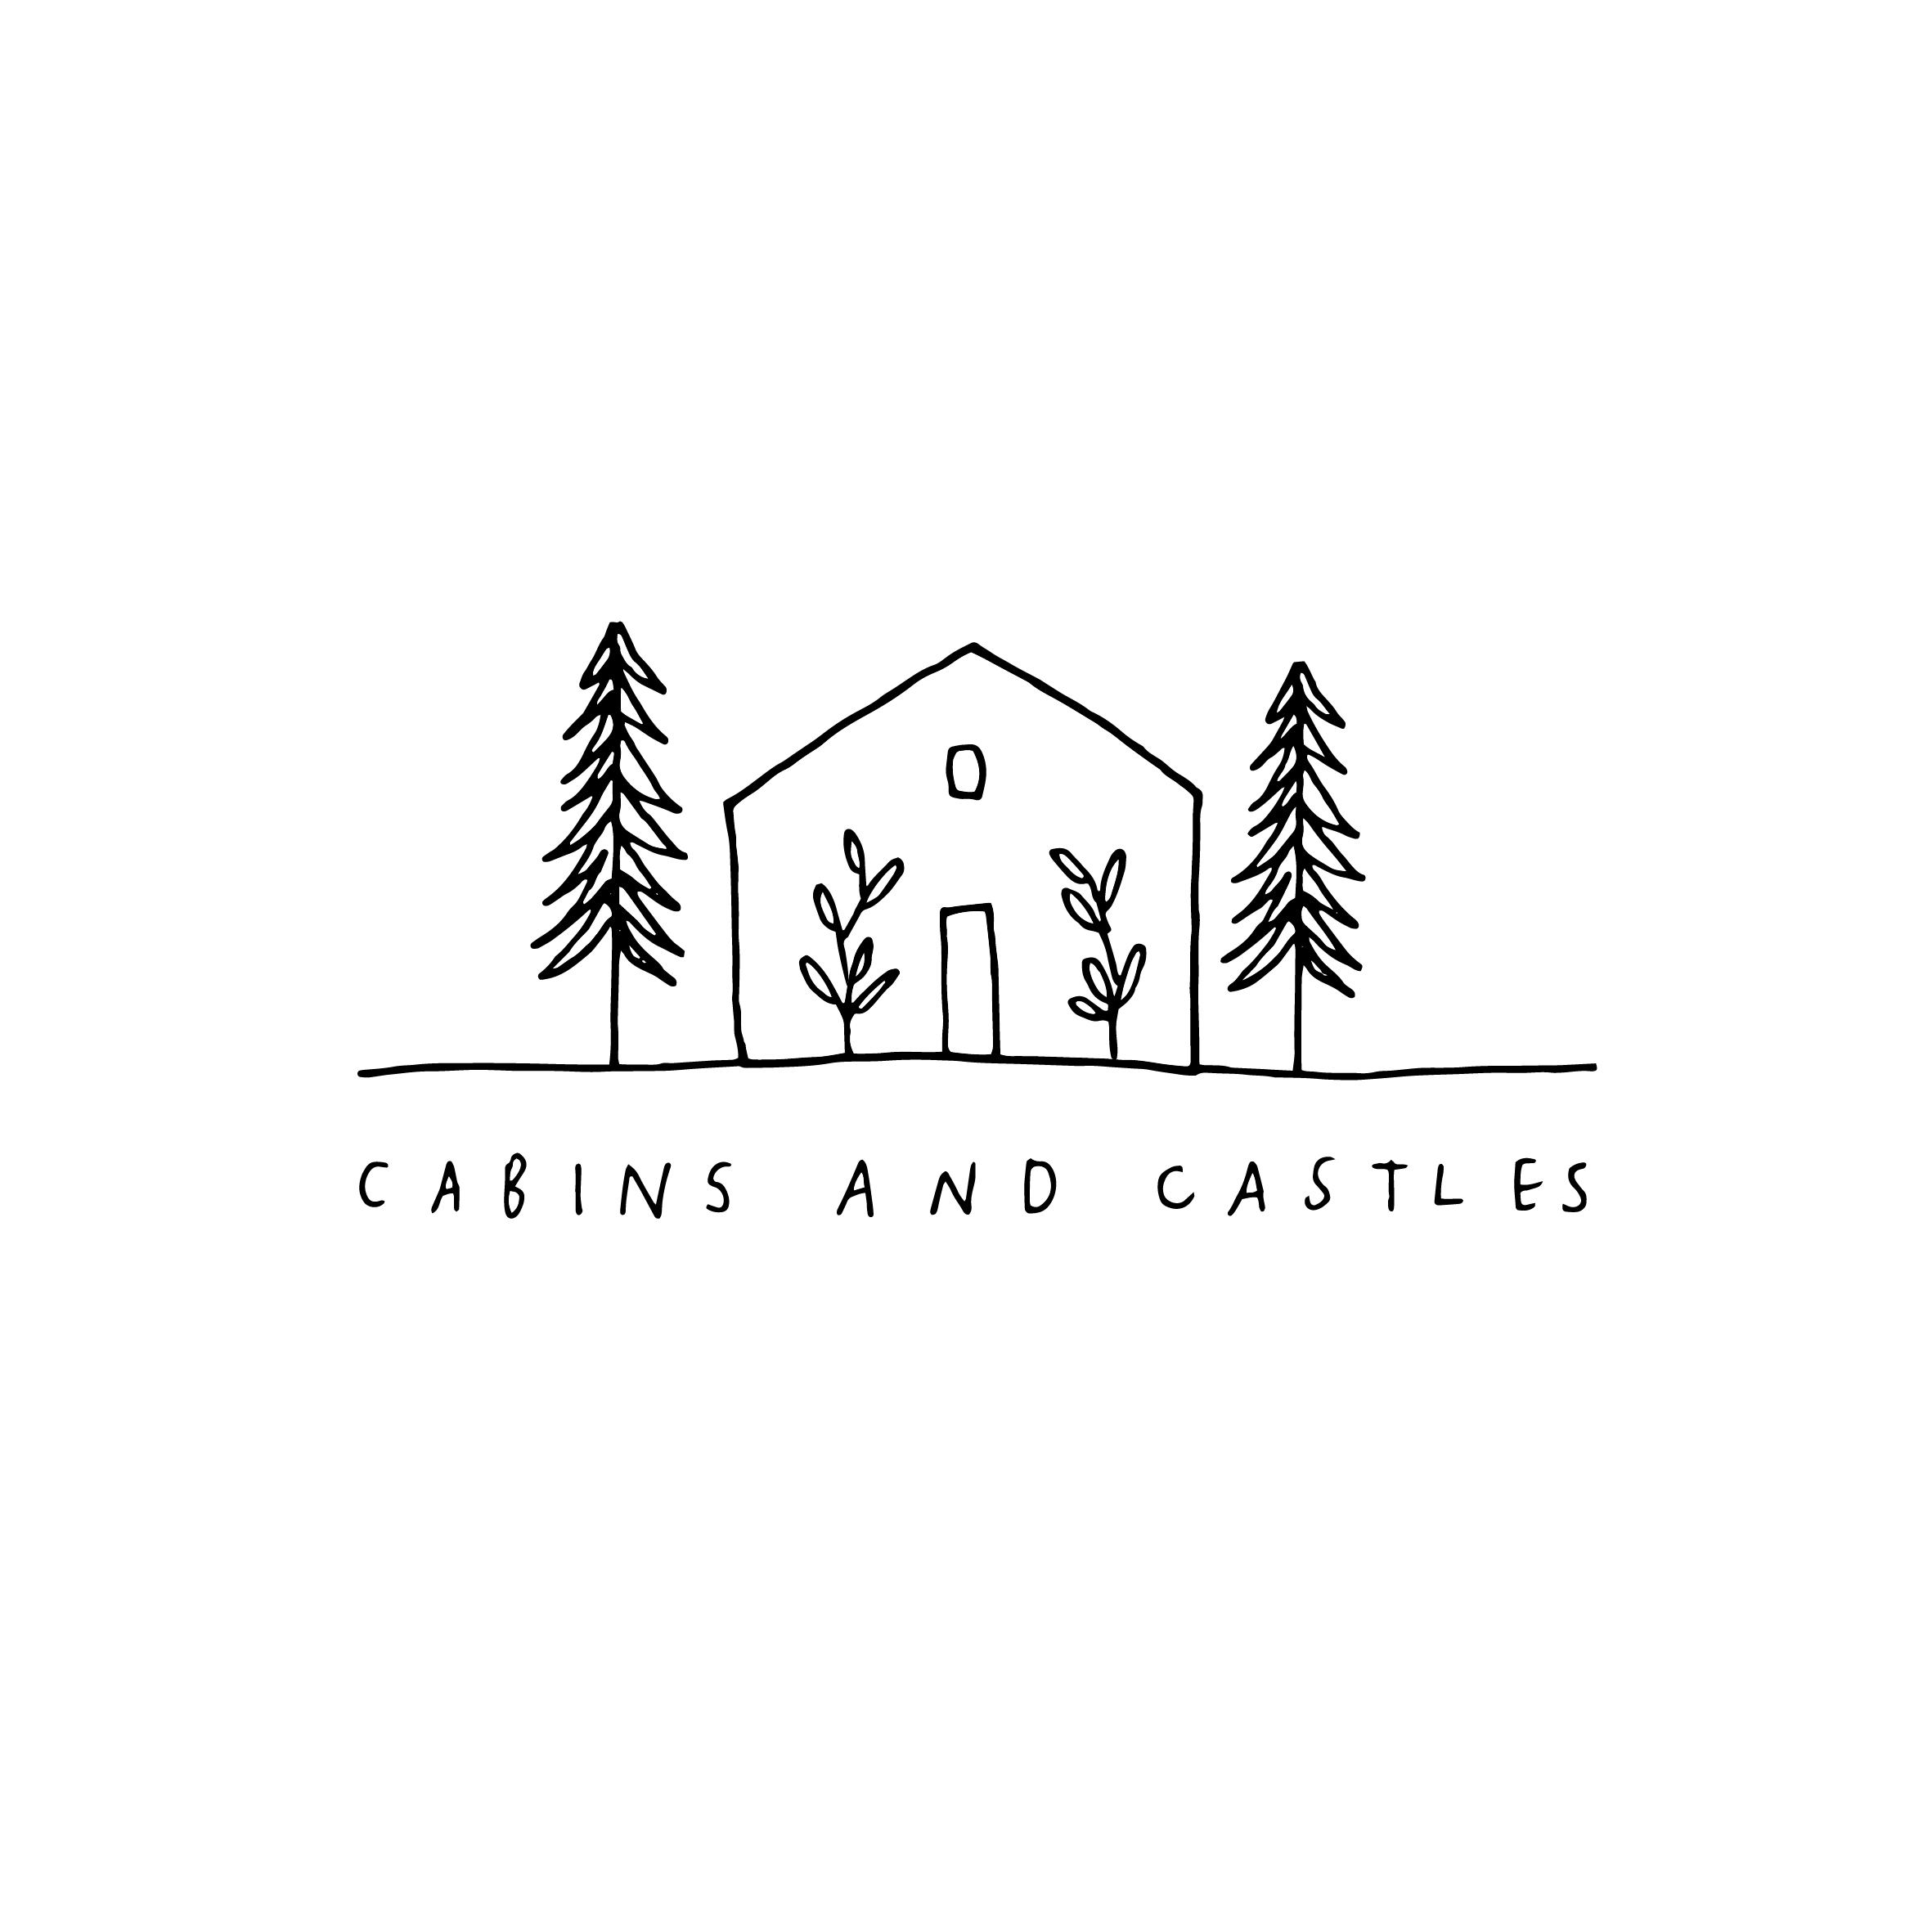 Cabins and castles final-01 Logo  2.jpg